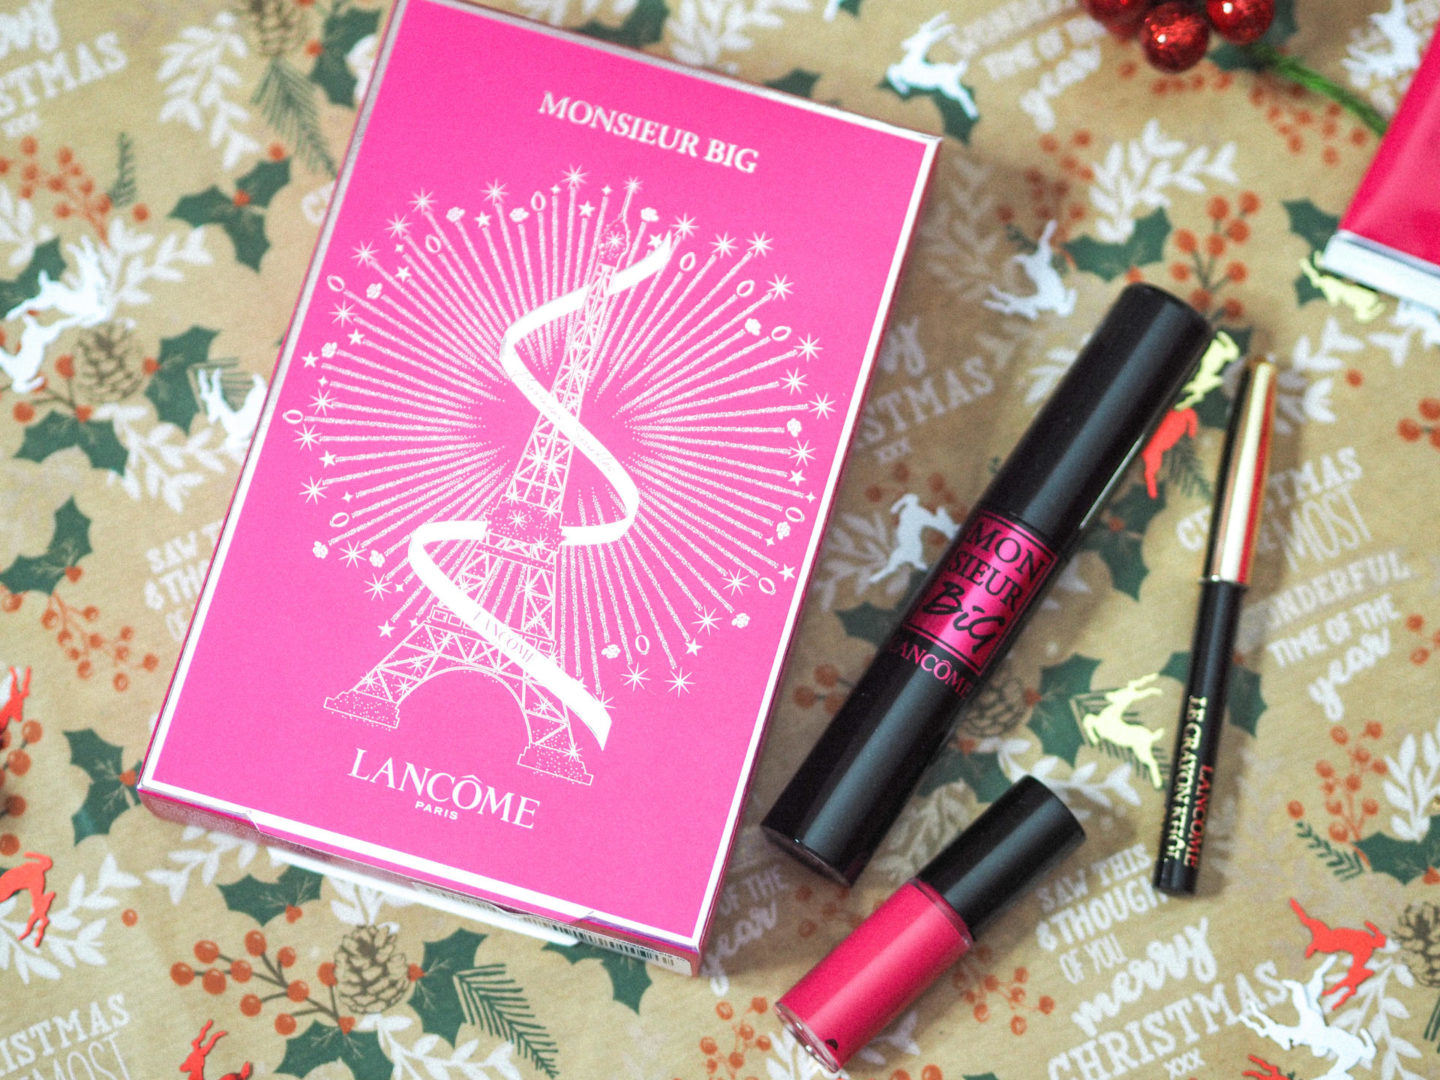 Win Lancôme Monsieur Big Giftset 12 Days of Christmas Giveaways - Rachel Nicole UK Blogger